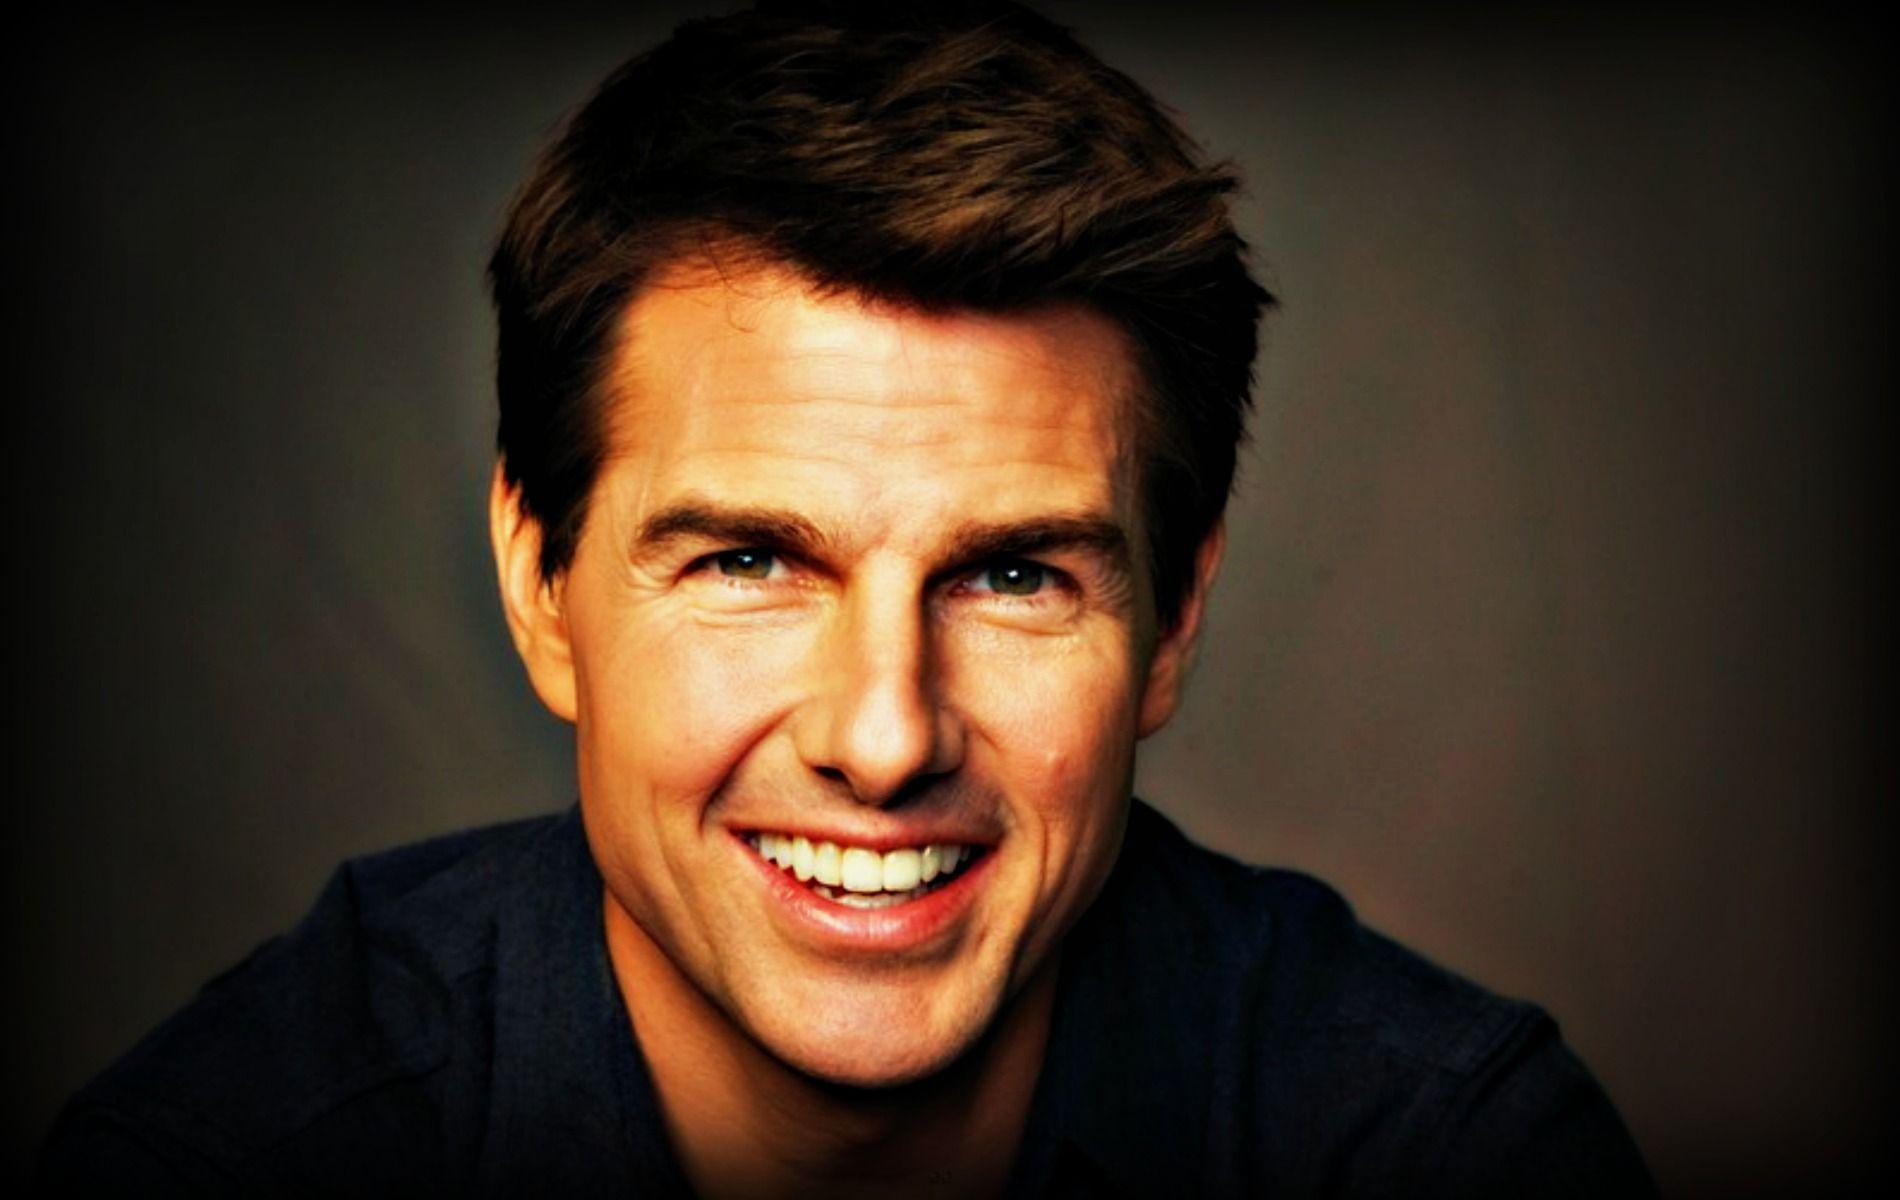 Hollywood Actor Tom Cruise wallpapers full HD